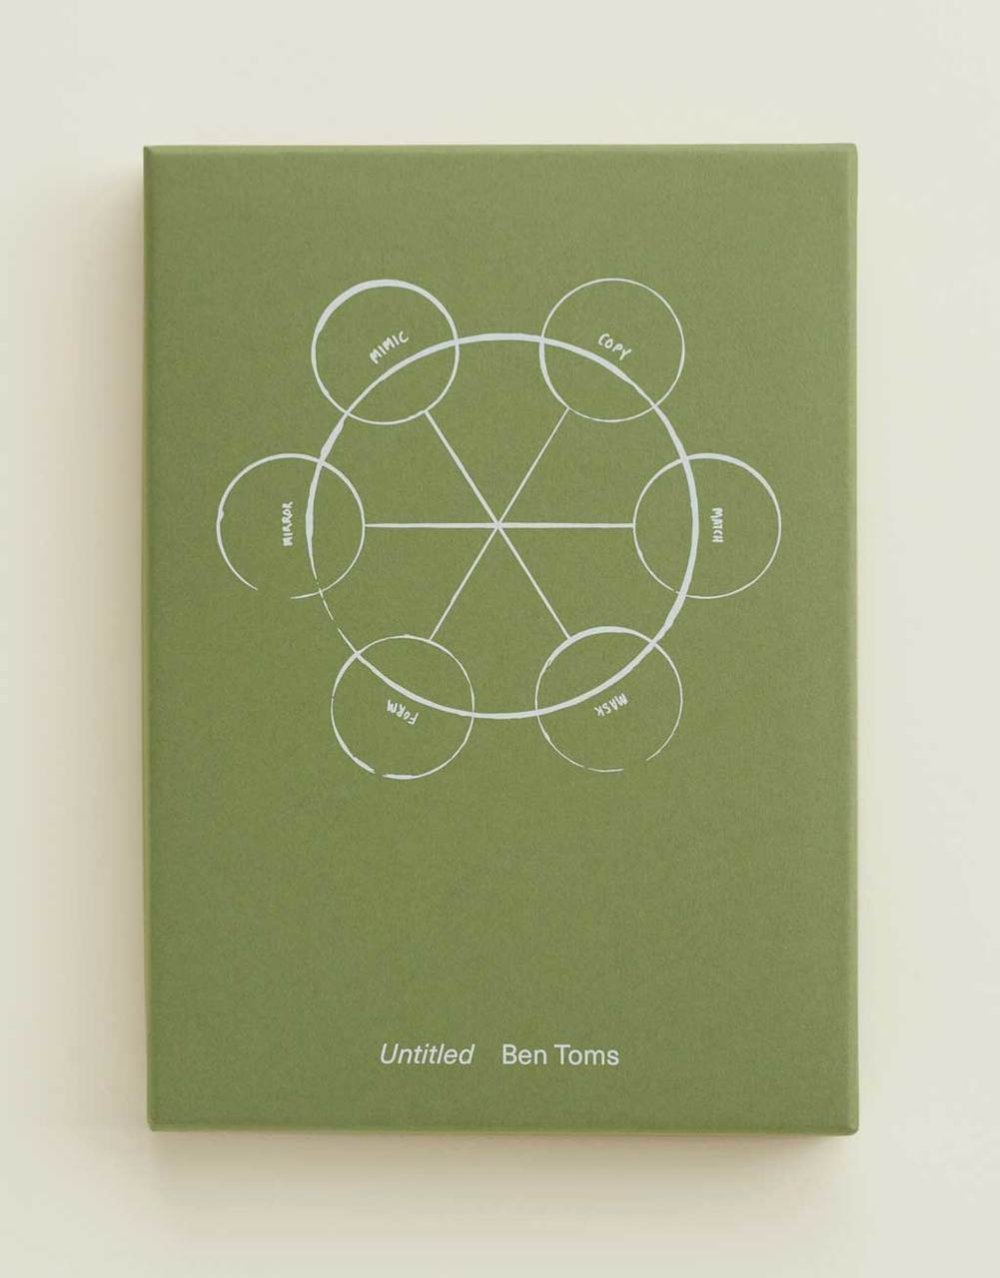 Untitled, Ben Toms, published by Owl Cave Books.